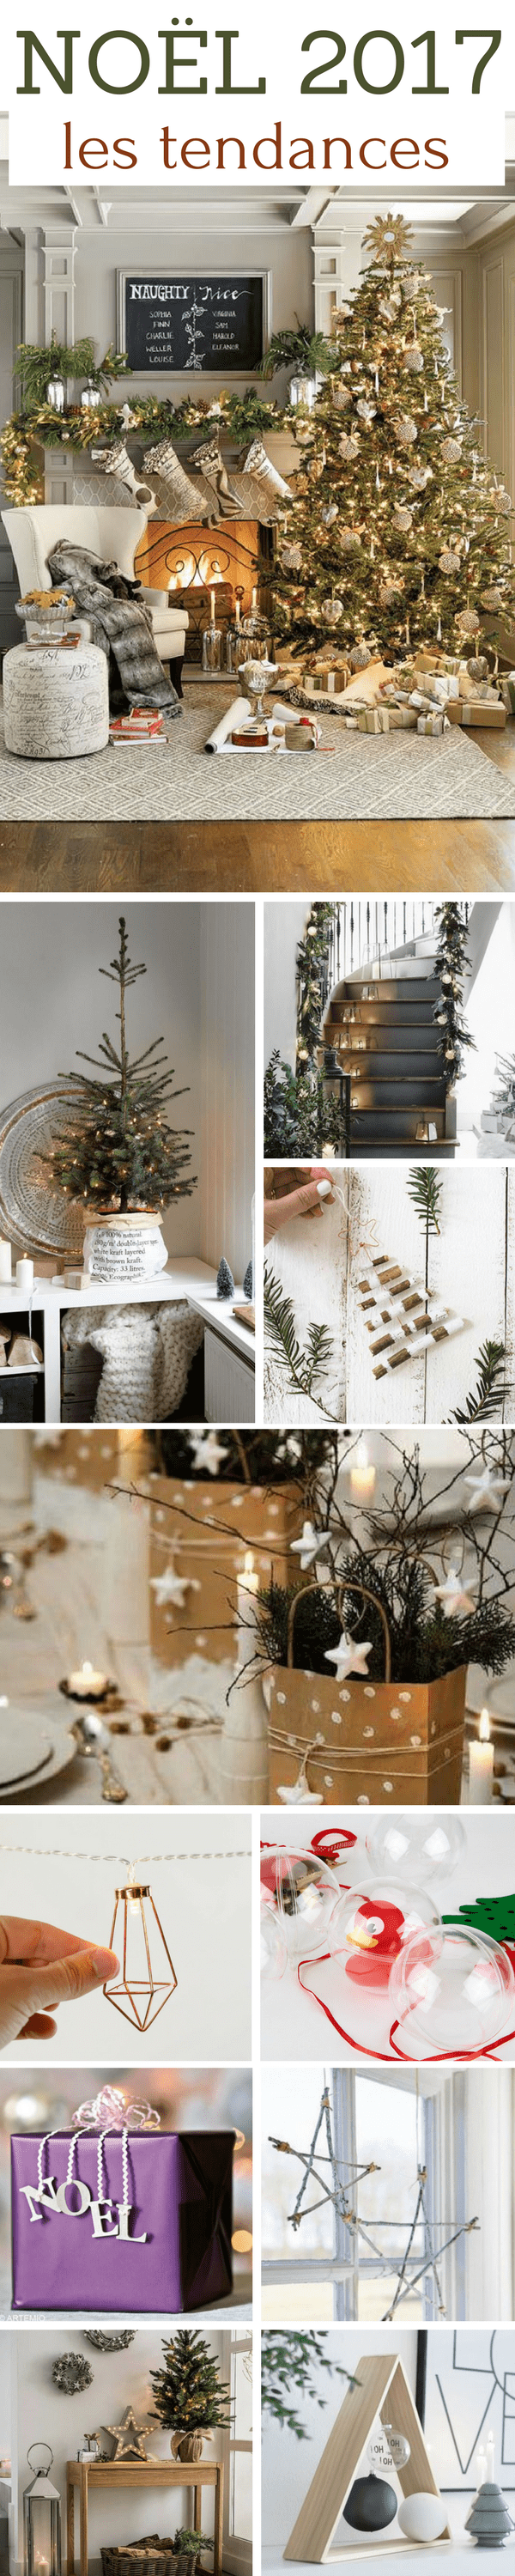 noel 2018 decoration Tendance Noël 2018 : Déco, Couleurs, Sapins, Table de Noël  noel 2018 decoration